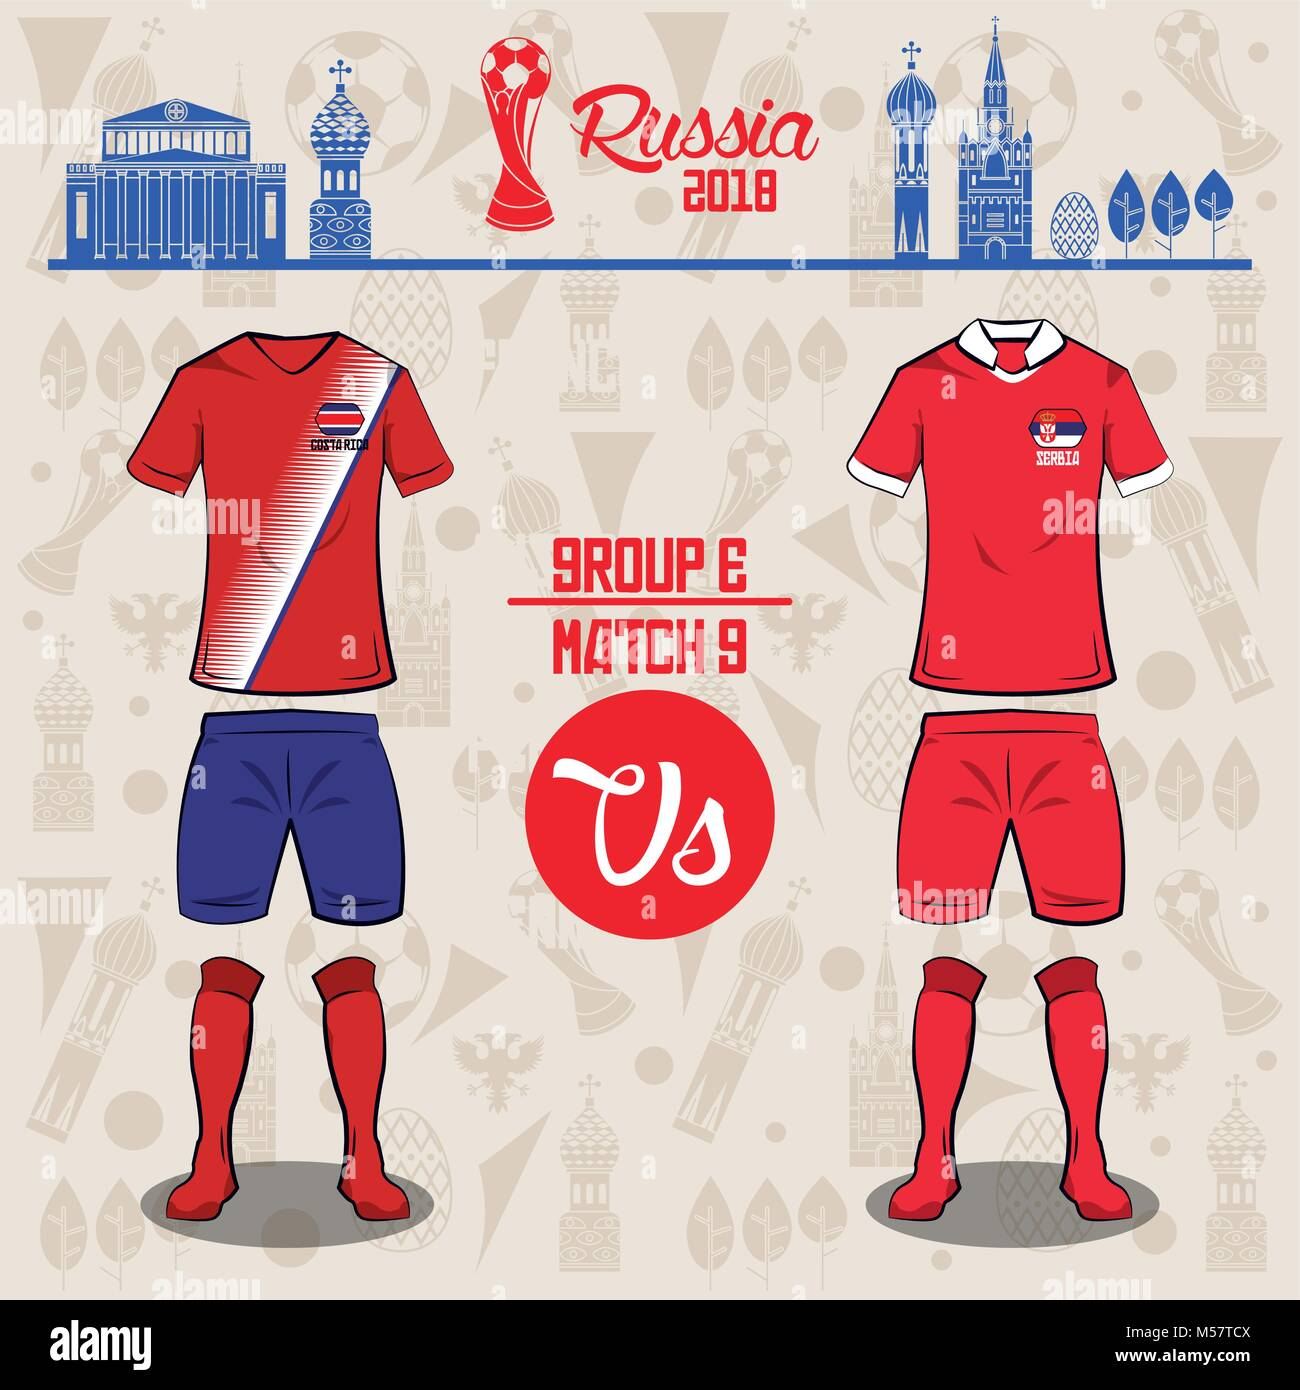 50fab232788 Football world russia 2018 match - Stock Vector